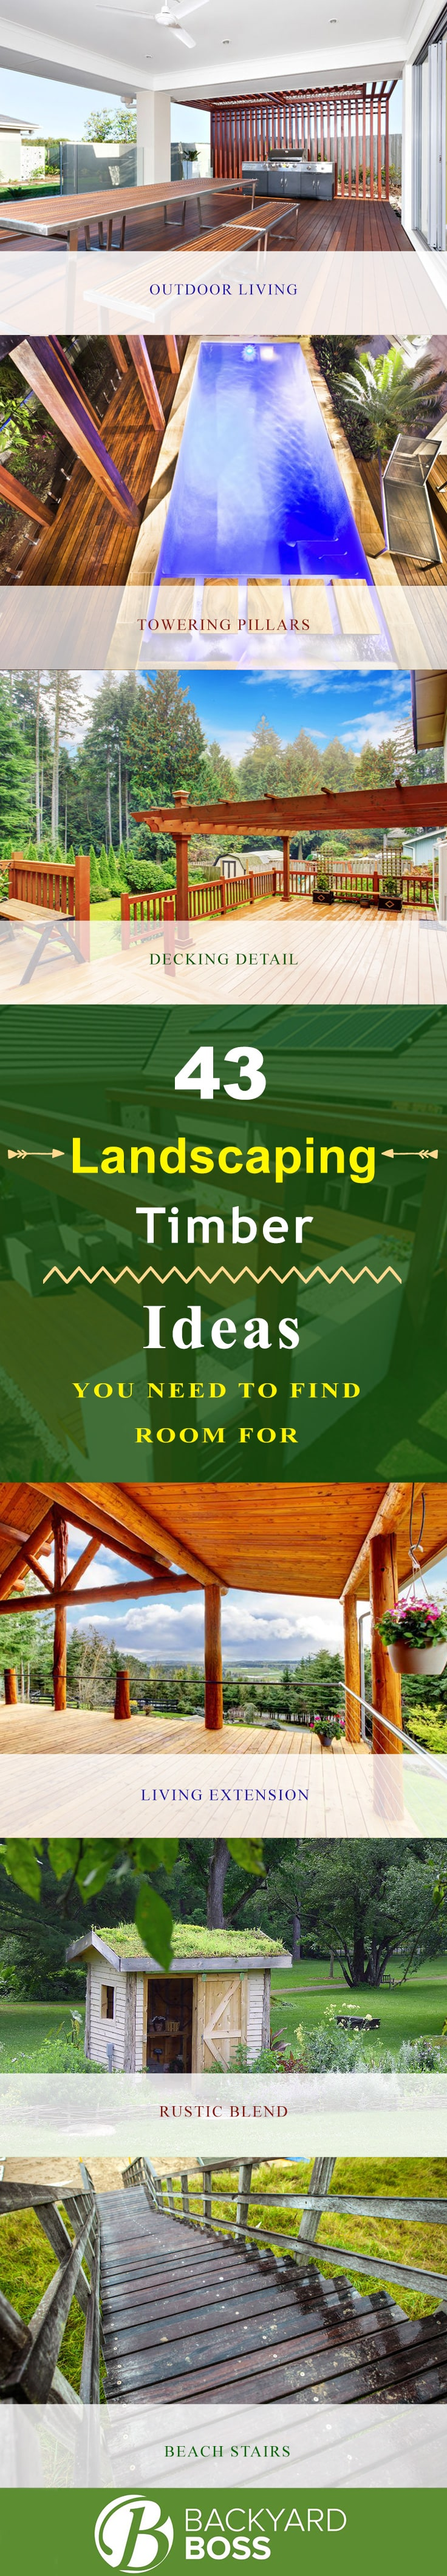 43 landscaping timber ideas you need to find room for